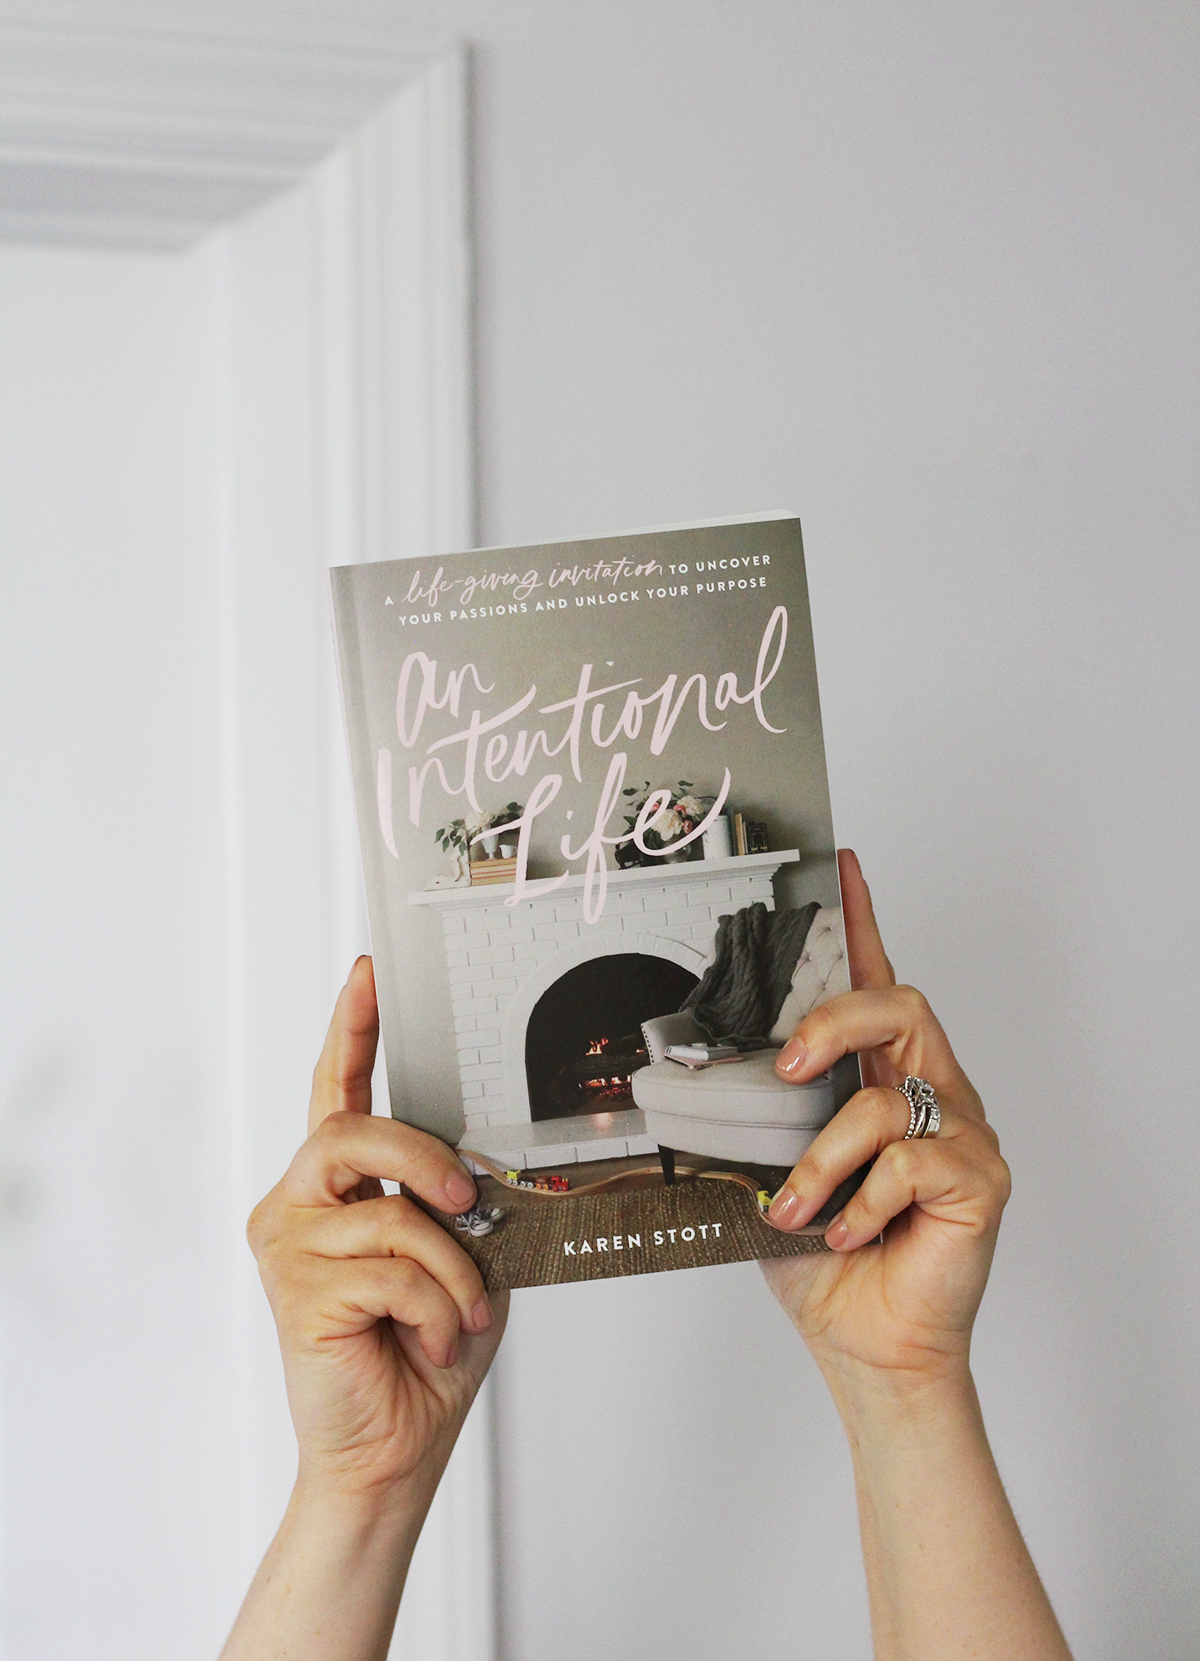 An Intentional Life Book by Karen Stott as part of Lily & Val Staycation Surprise Box Launching on Thursday, July 26th